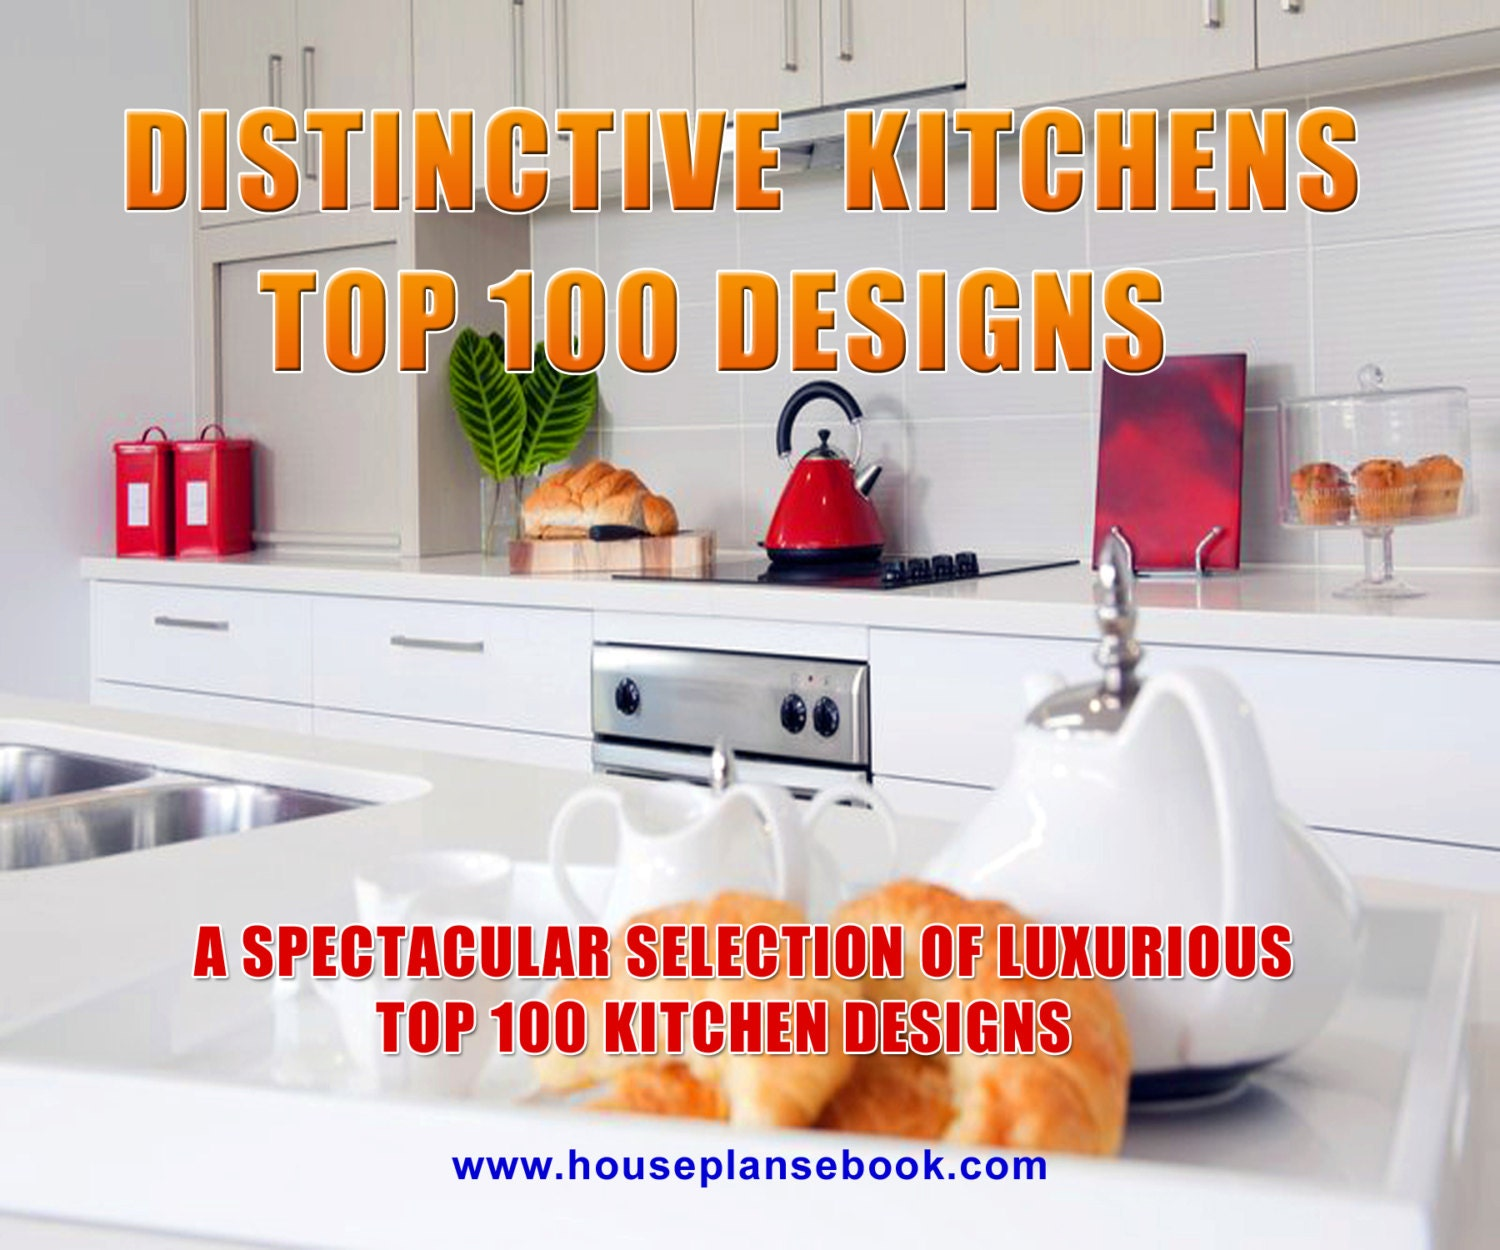 Kitchen Design Book | Kitchen decor | Kitchen ideas | Kitchen plans ...